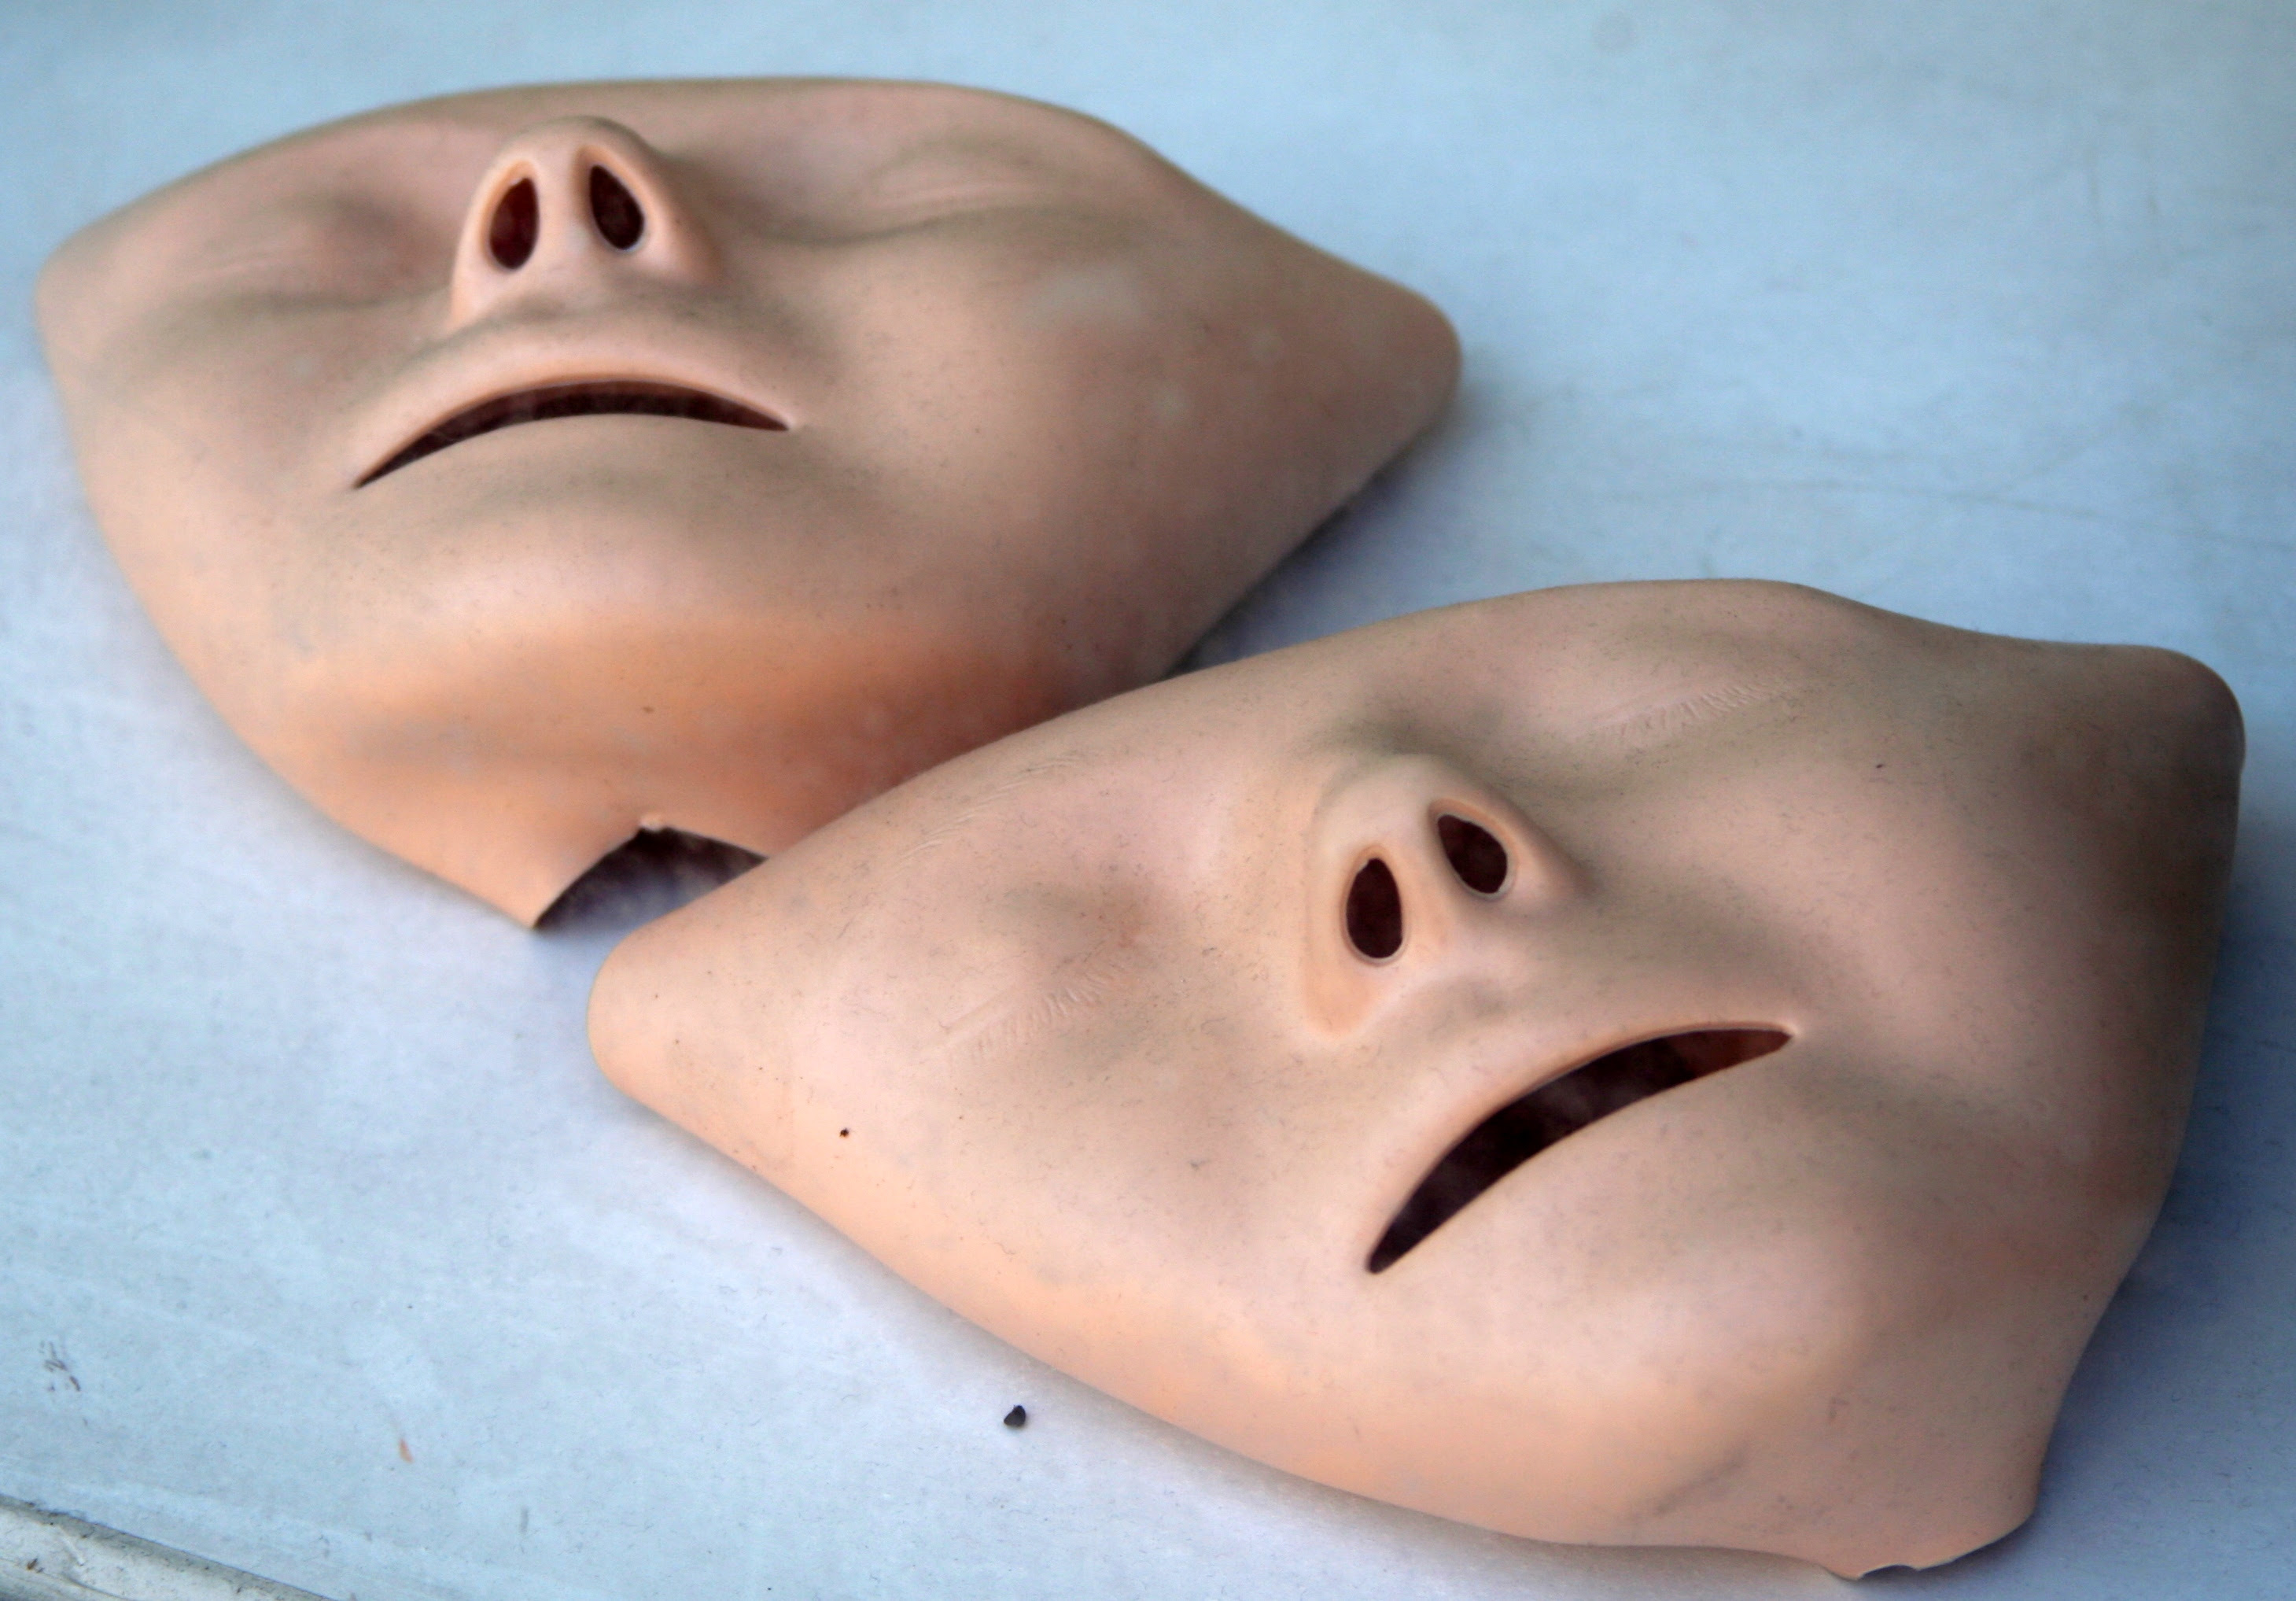 http://upload.wikimedia.org/wikipedia/commons/8/80/First_aid_masks_for_CPR_training.jpg